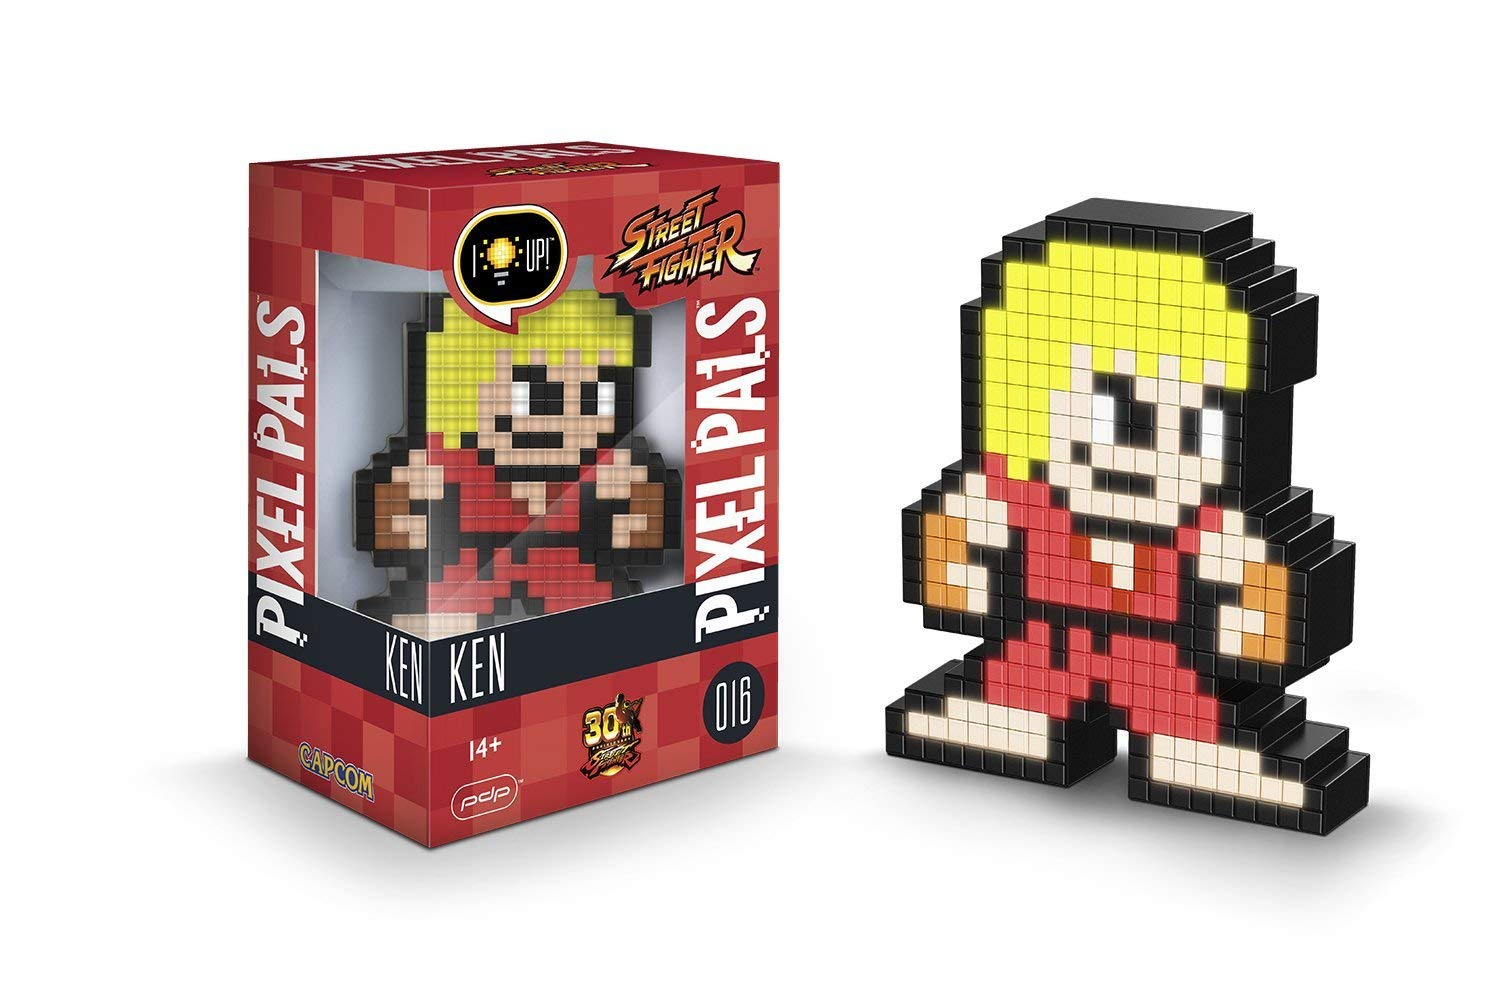 Pixel Pals Ken Street Fighter geek insolite